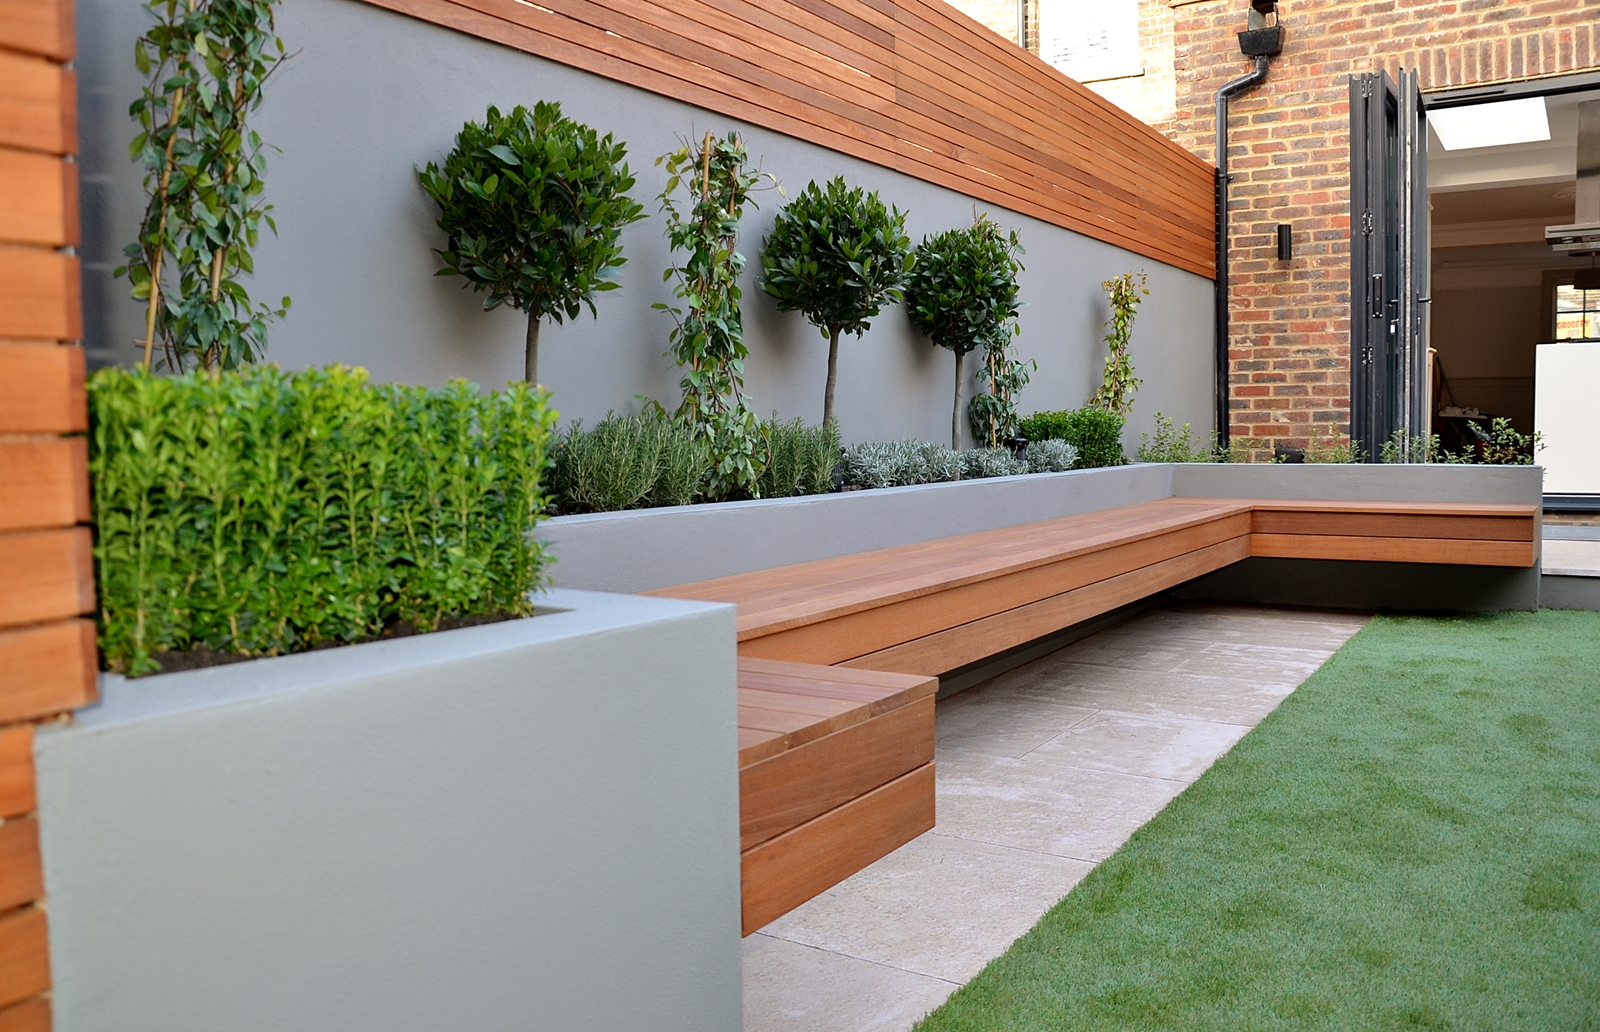 Modern garden design and designer london for Home garden design uk